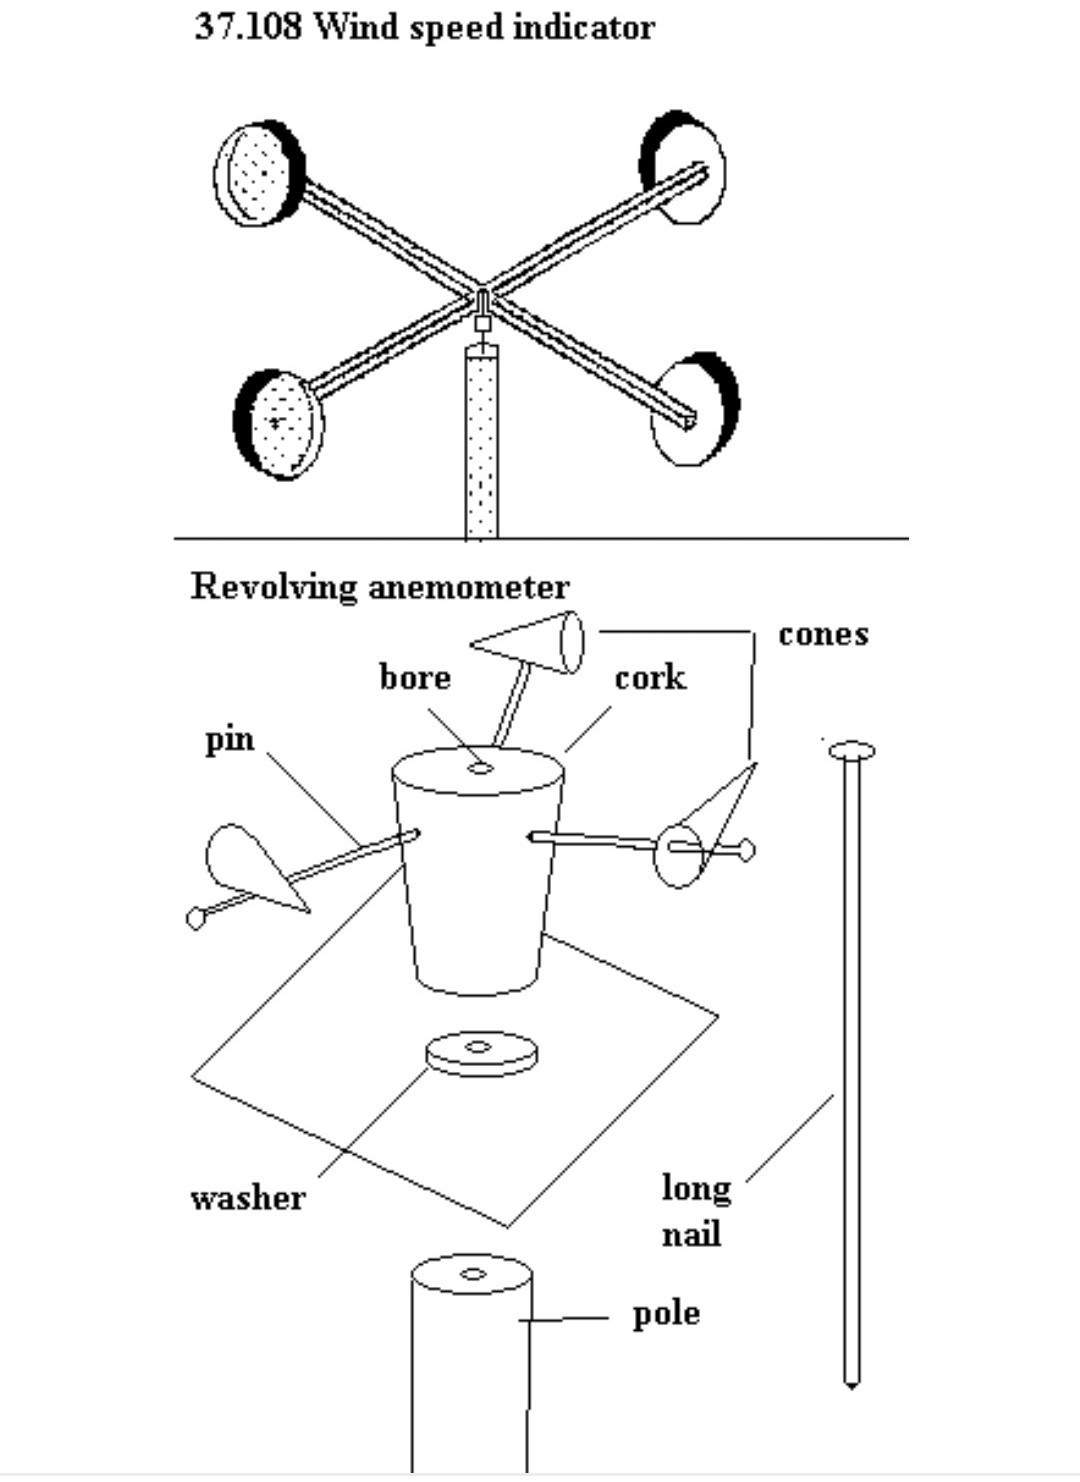 A Labelled Diagram Of An Anemometer